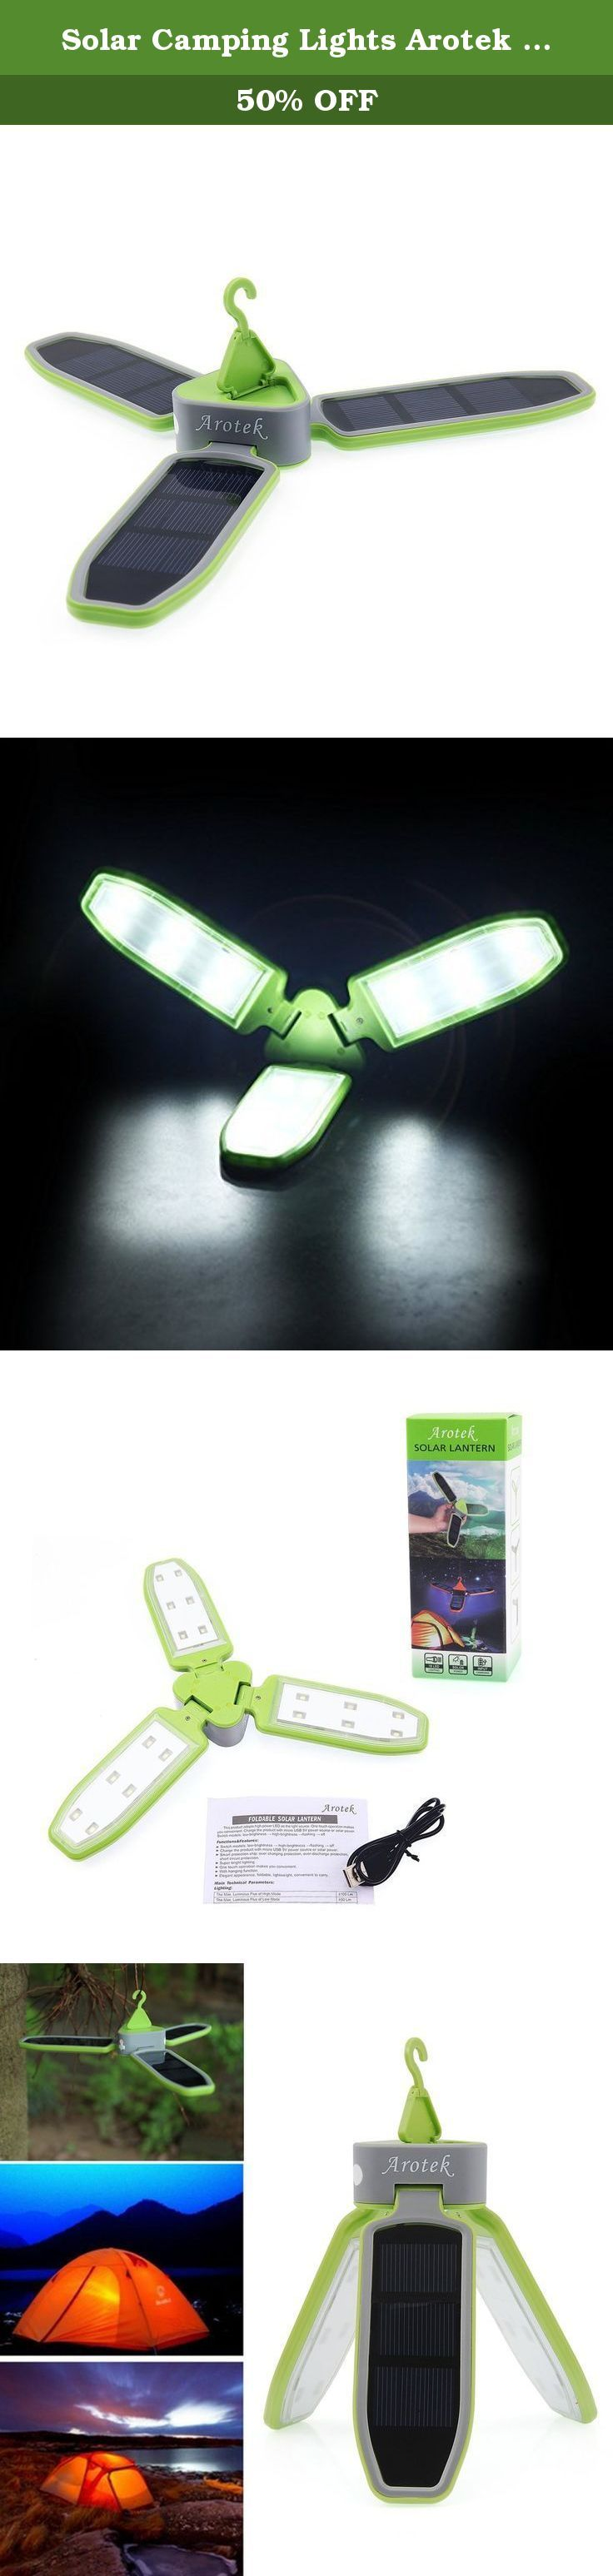 Solar Camping Lights Arotek Collapsible 18-LED Bright Clover Outdoor Tent Lantern Portable Rechargeable Lighting Lamp Powered by USB and Solar Panel with 3-mode Brightness (Green). Have you experienced tent lantern went dead halfway through camping trip? Have you experienced carrying large and heavy camping lamp during outdoor activities? Arotek Clover Camping Lamp, in elegant appearance, foldable, lightweight and convenient, offers an ideal lighting solution to your outdoor adventure....